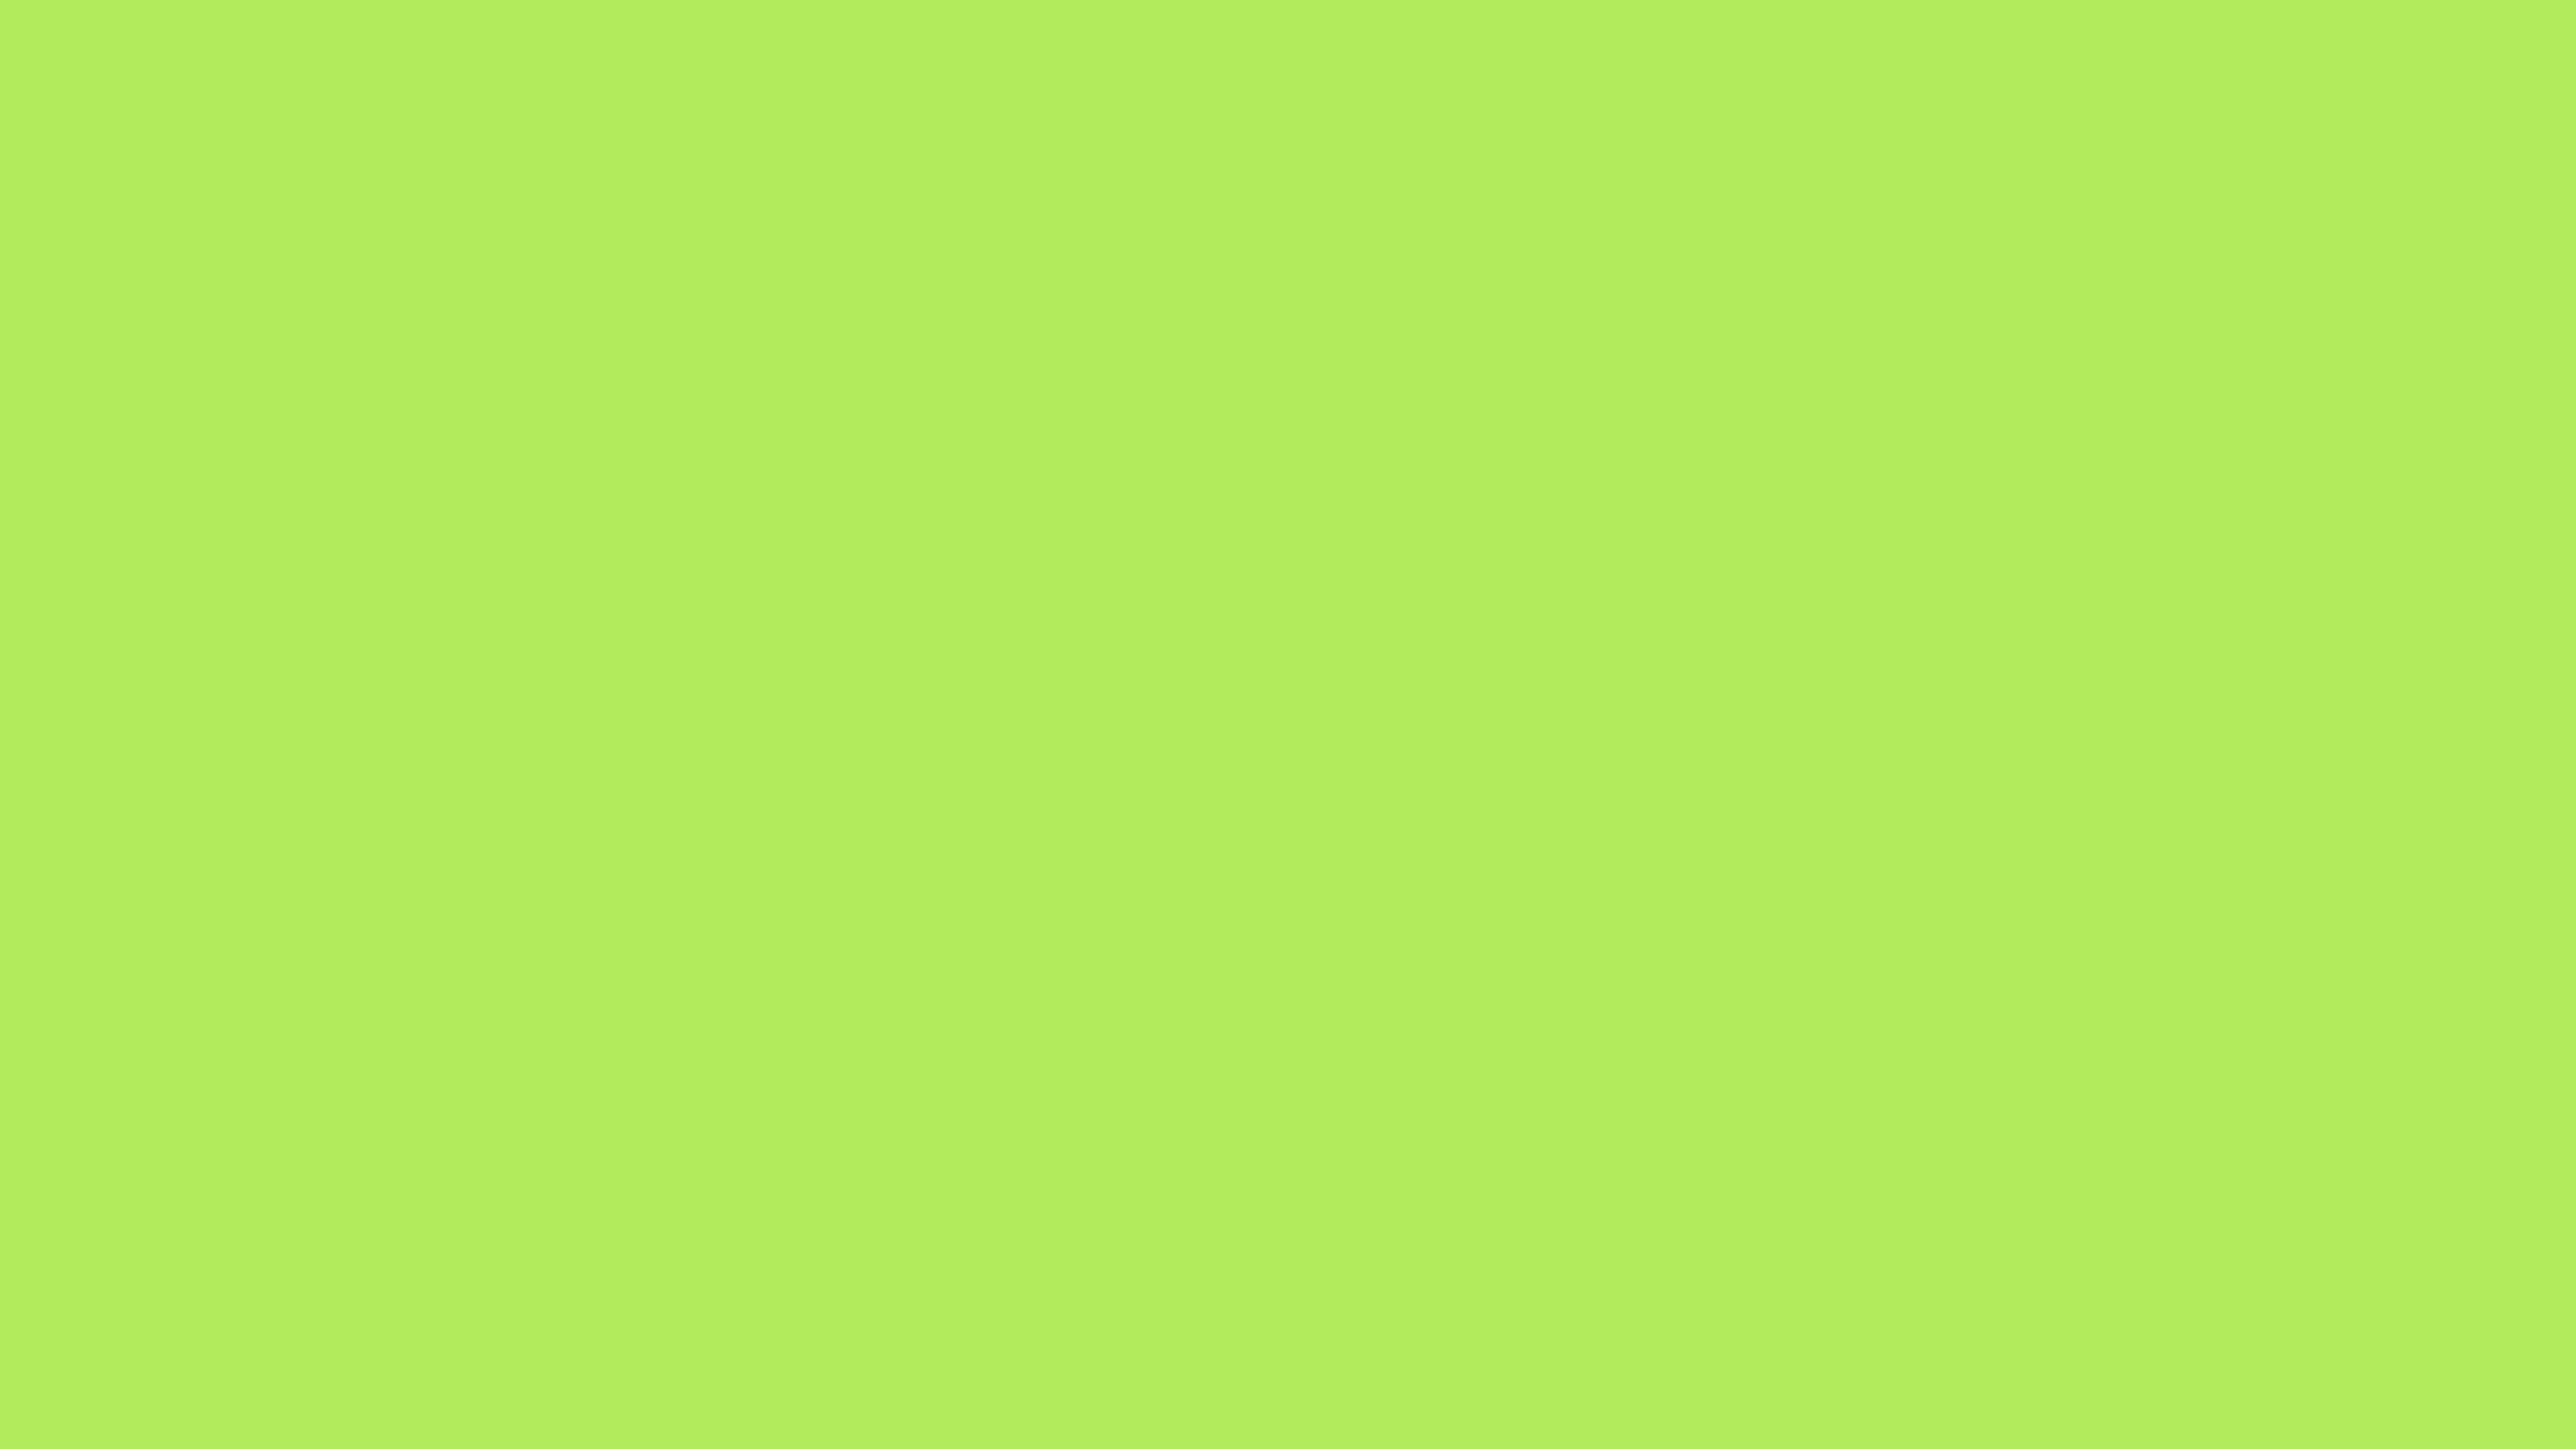 4096x2304 Inchworm Solid Color Background